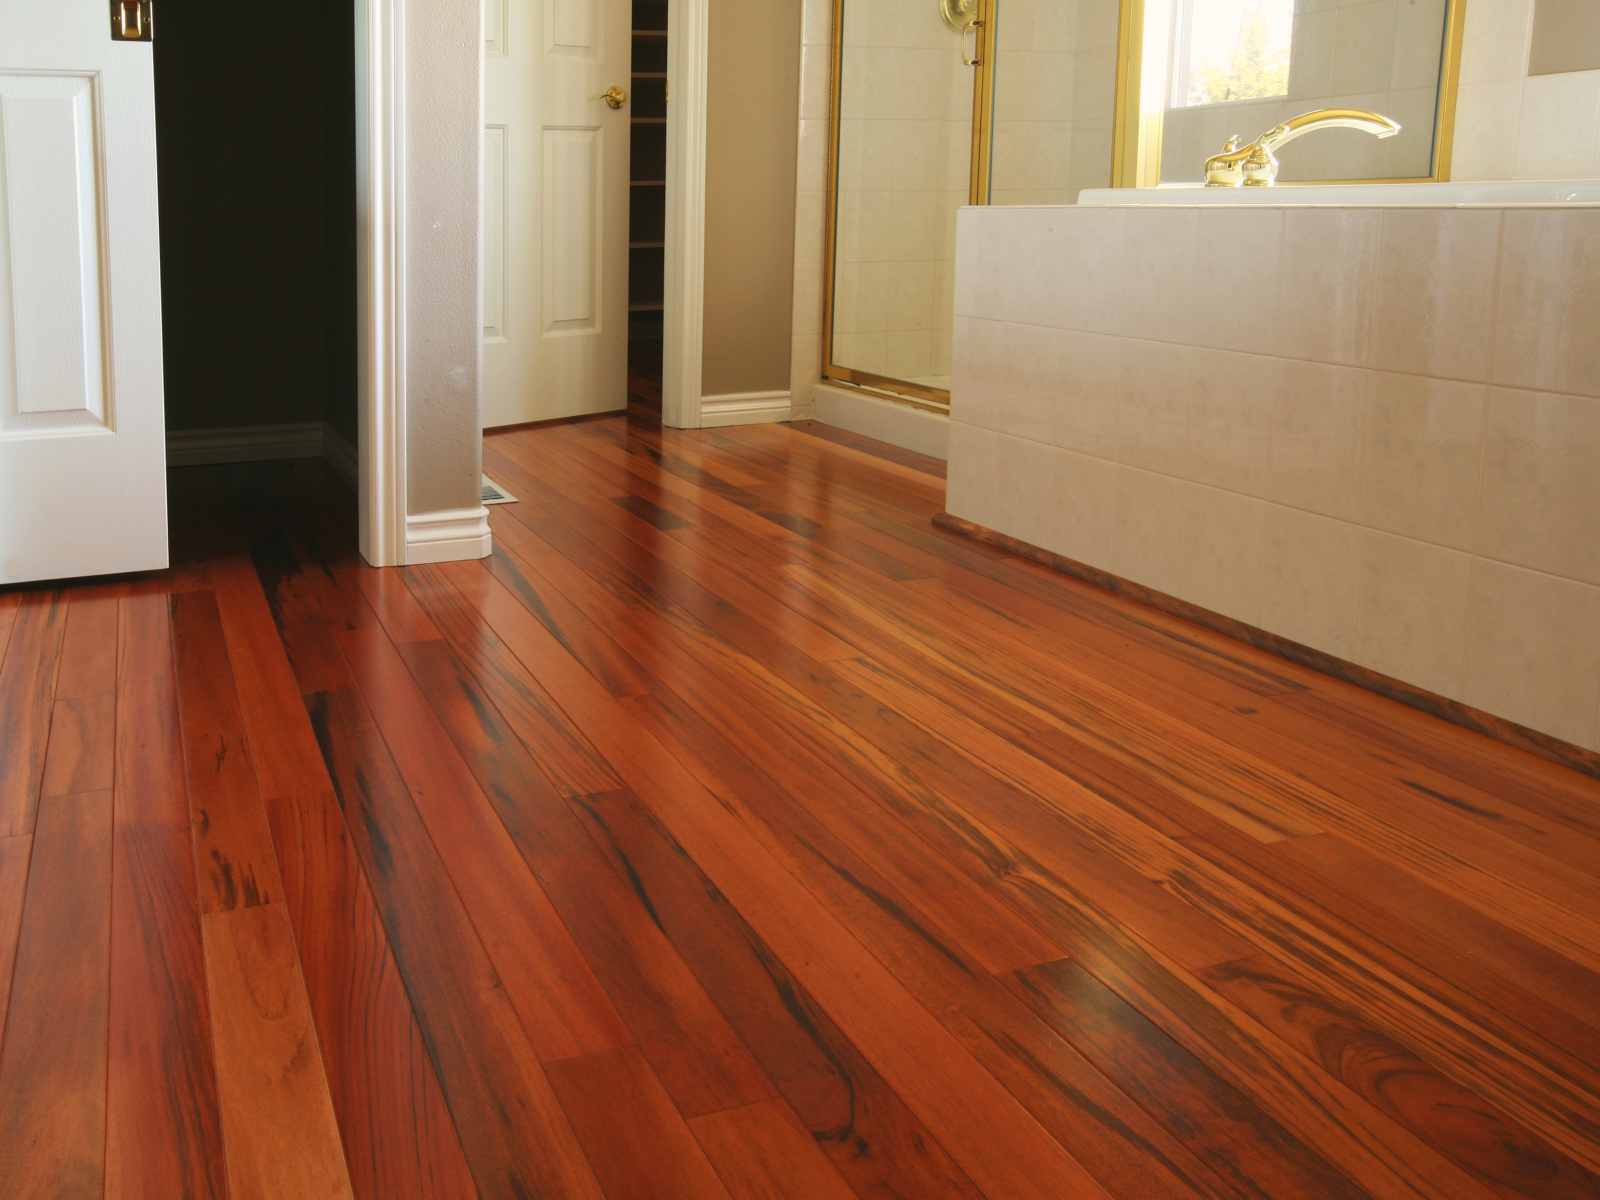 Bamboo flooring eco friendly flooring for your home for Popular flooring ideas